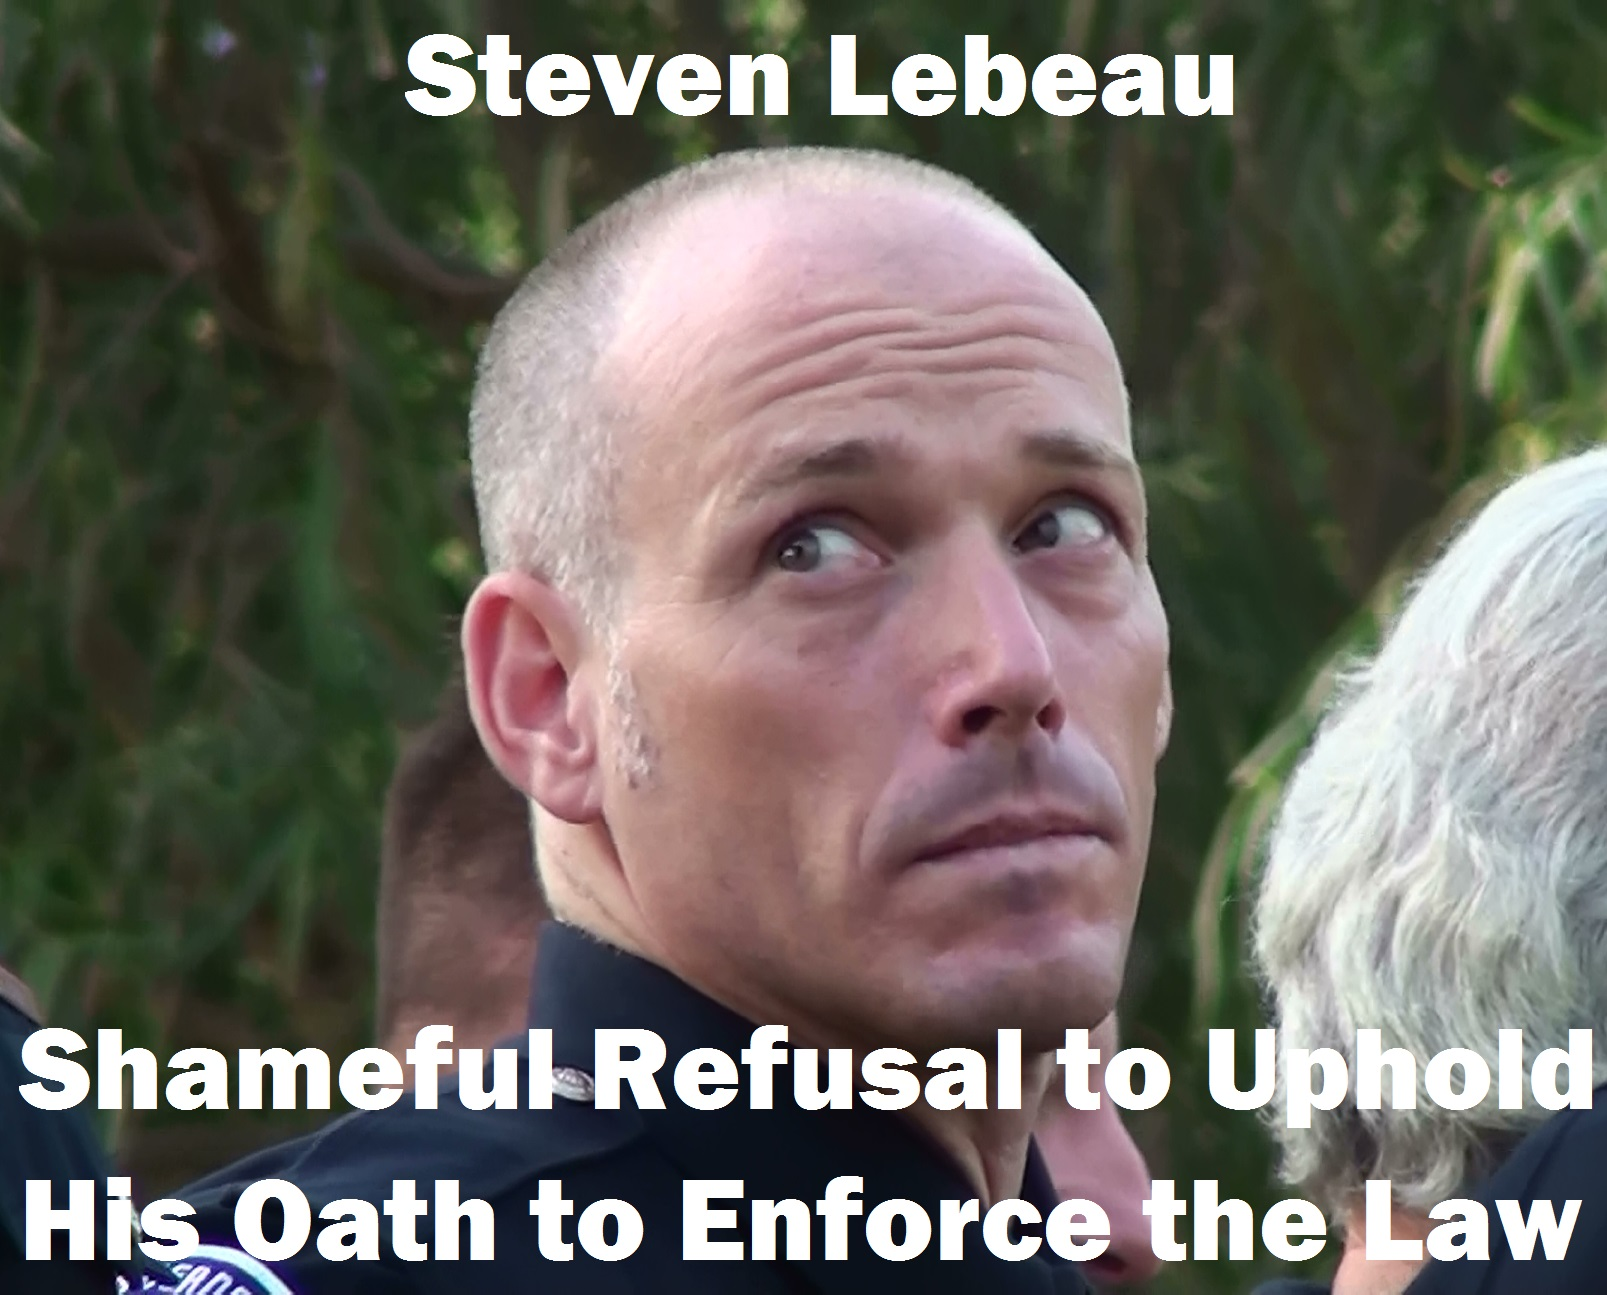 Lebeau Steve Photo Day Crinkled Forehead 09-22-2015 - Cropped & Annotated